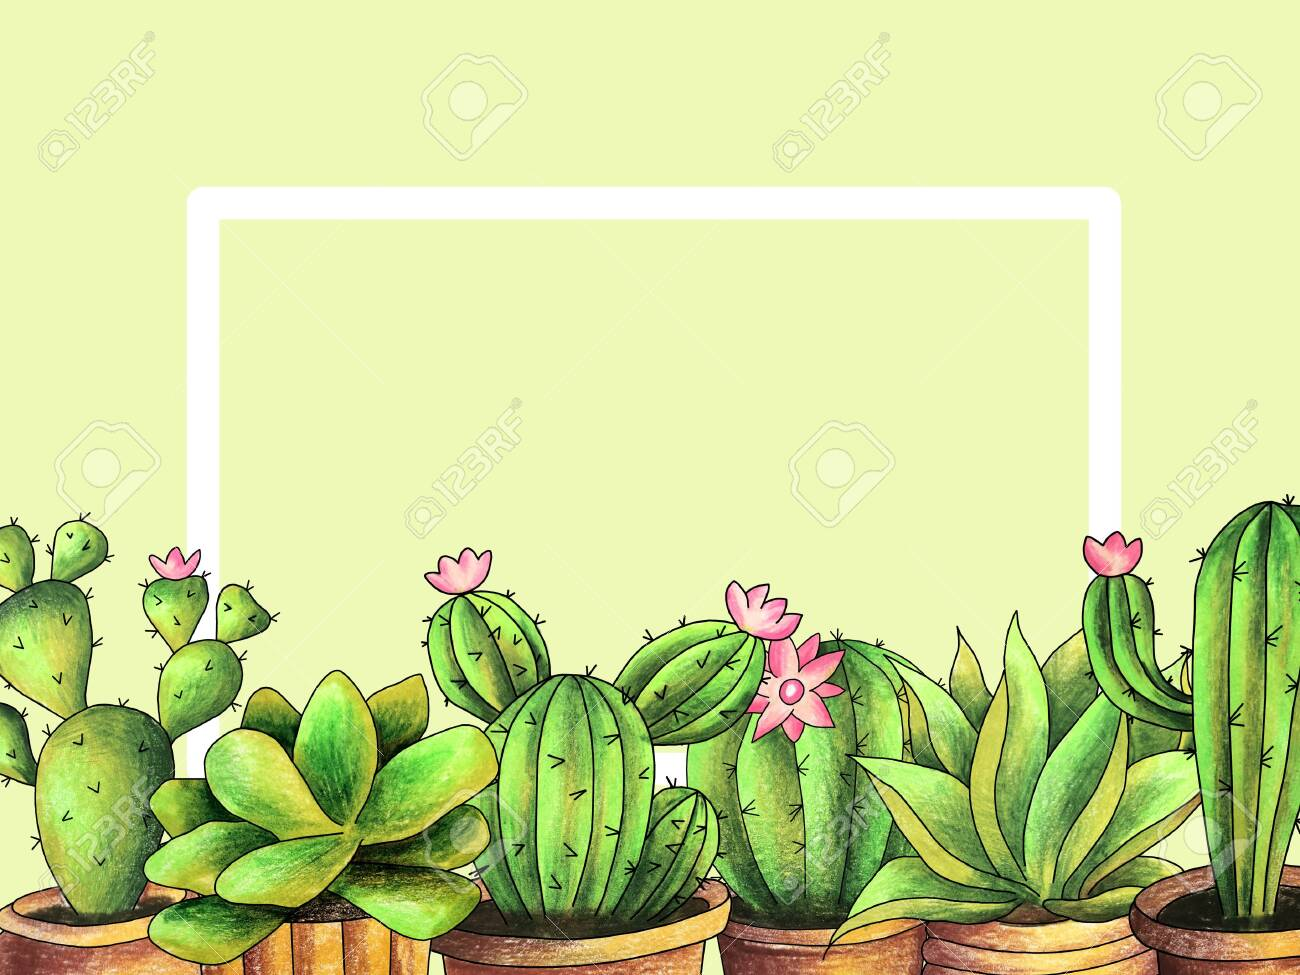 Decorative Frame Cactus In A Pot Drawing Hand Colored Pencils Stock Photo Picture And Royalty Free Image Image 155917403